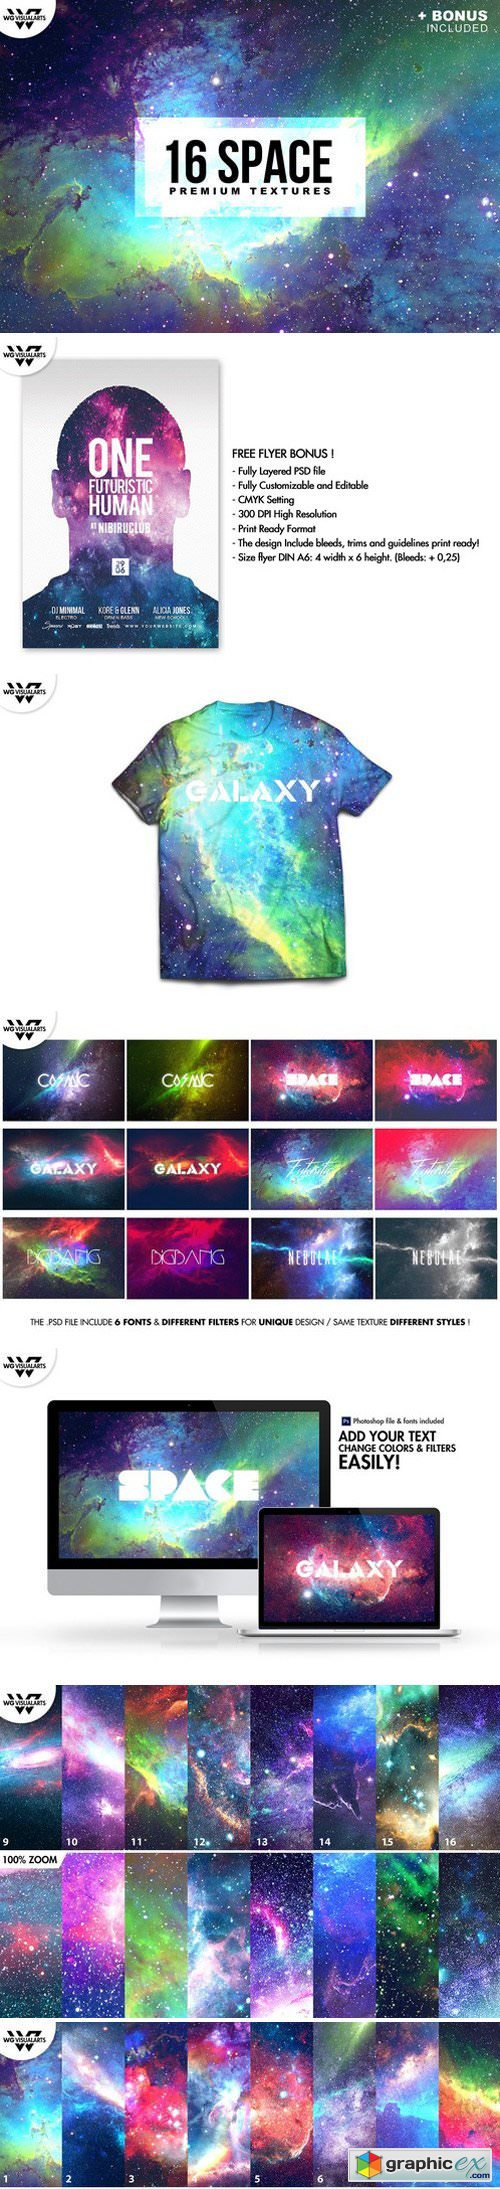 16 SPACE GALAXY Textures + BONUS